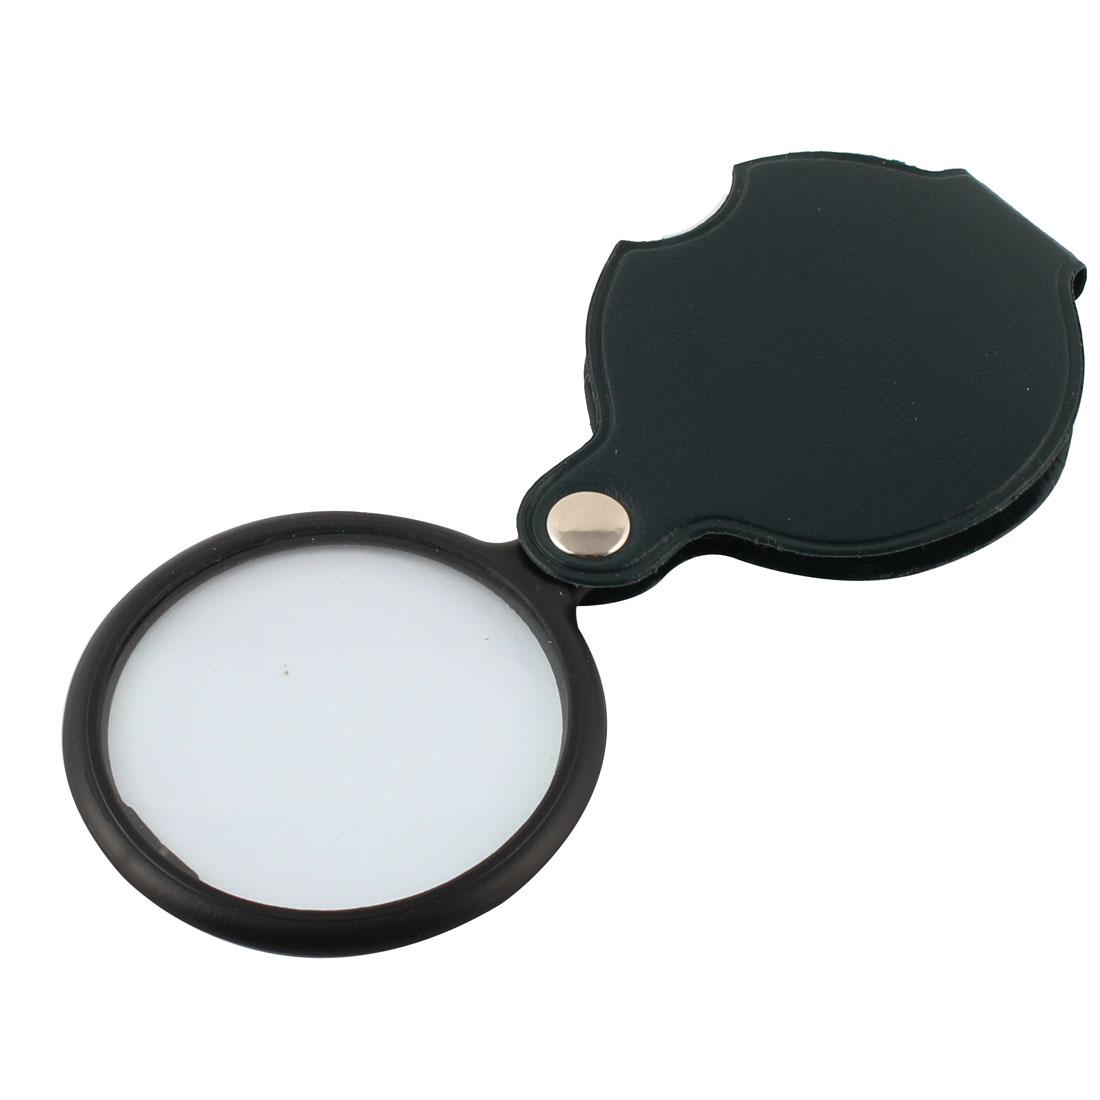 Faux Leather Cover Round Shaped Rotatable Handheld Magnifier 55mm Dia